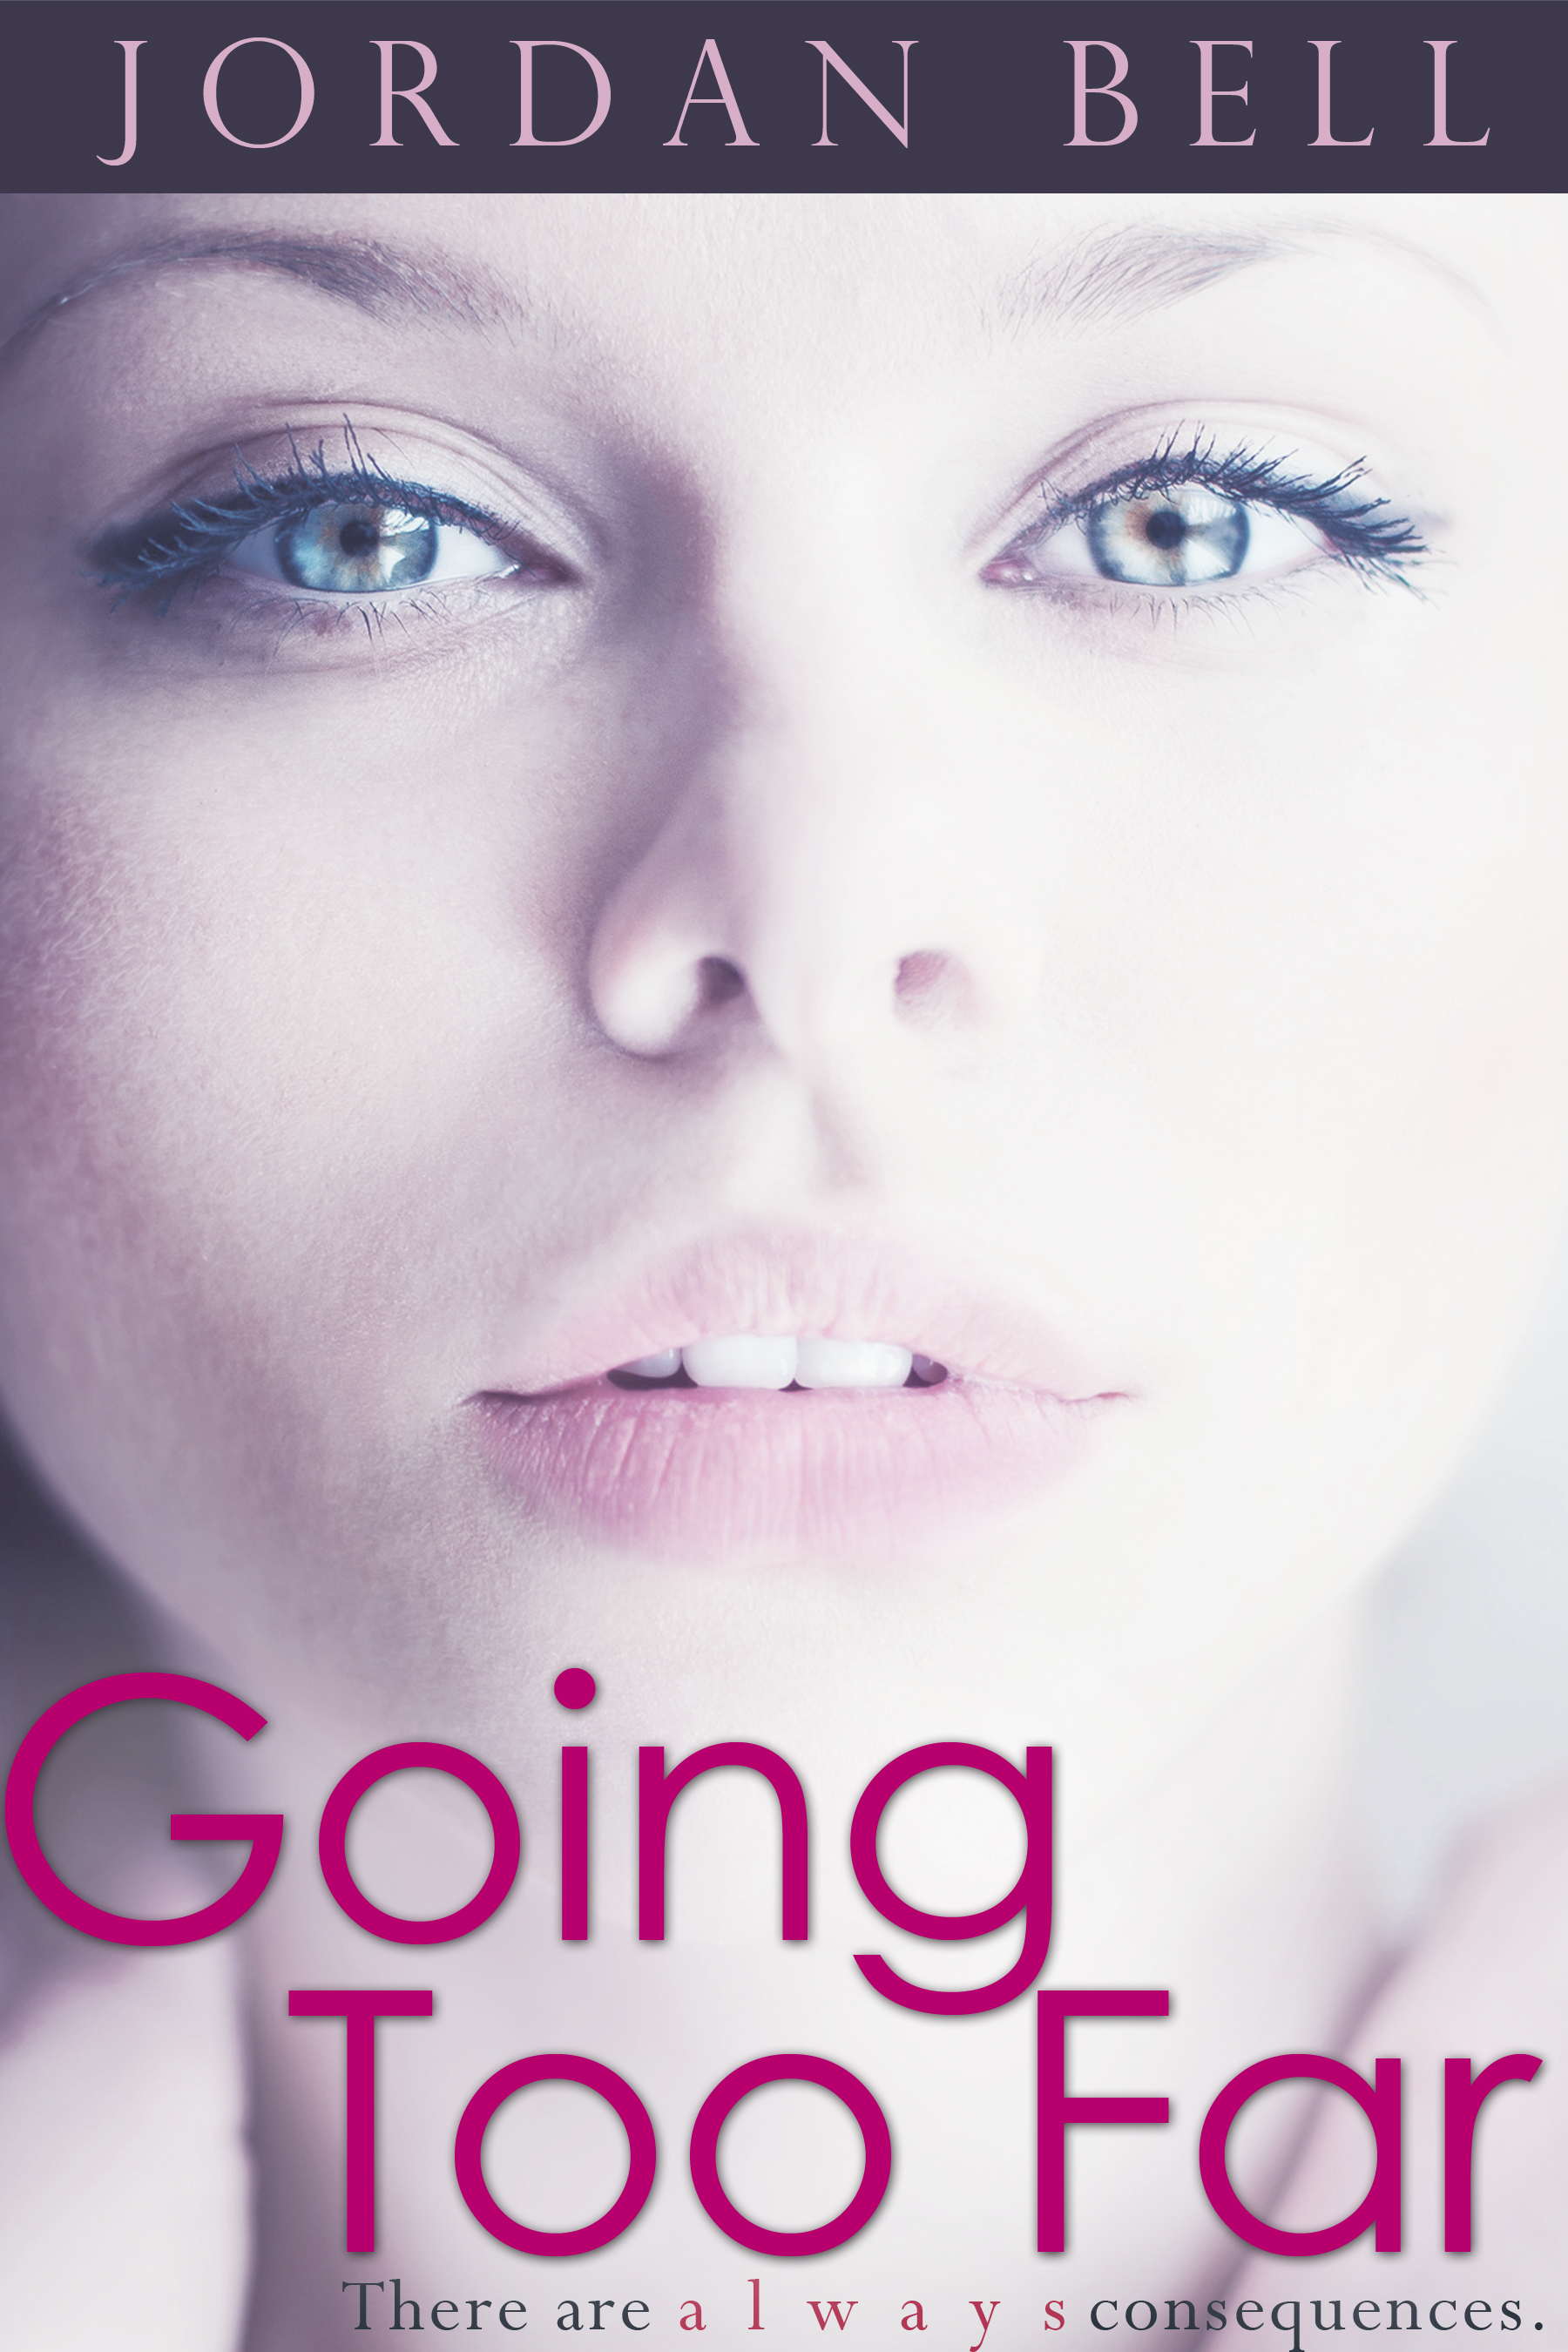 Jordan Bell - Going Too Far (The Curvy Submissive)